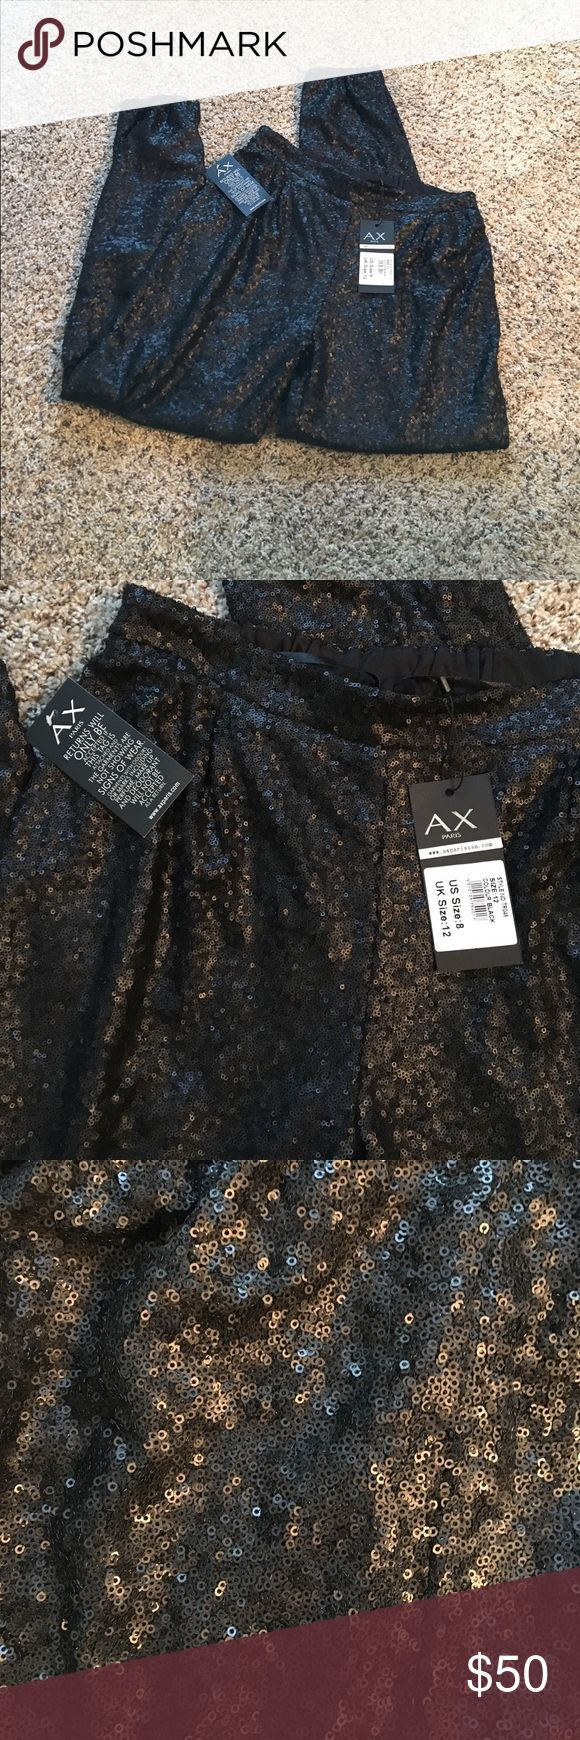 """NWT AX Paris Sequin Pants NWT, elastic waist measures 15"""" relaxed - stretches to 19"""". Inseam 30"""", ankles are also elastic so length can be adjusted. These are discontinued. AX Paris Pants"""